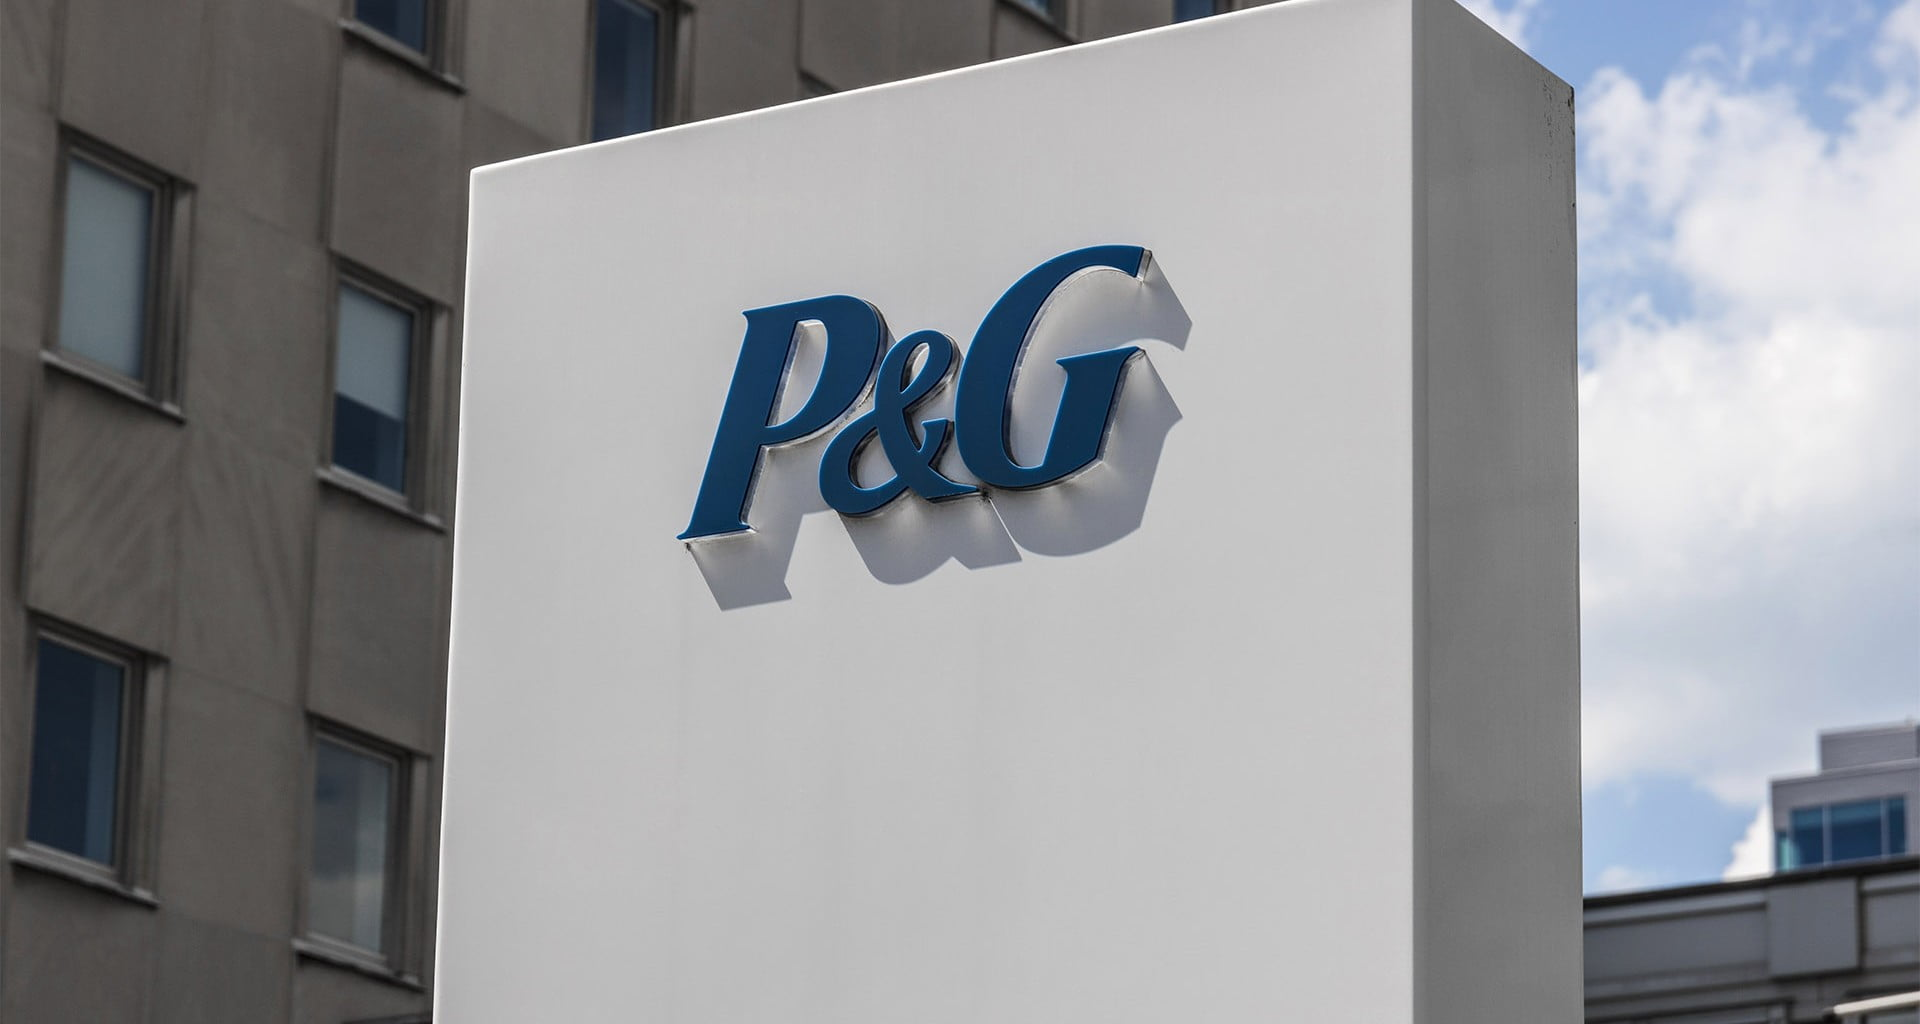 Monica Turner is the new P&G's North America sales president, Monica Turner is the new P&G's North America sales president